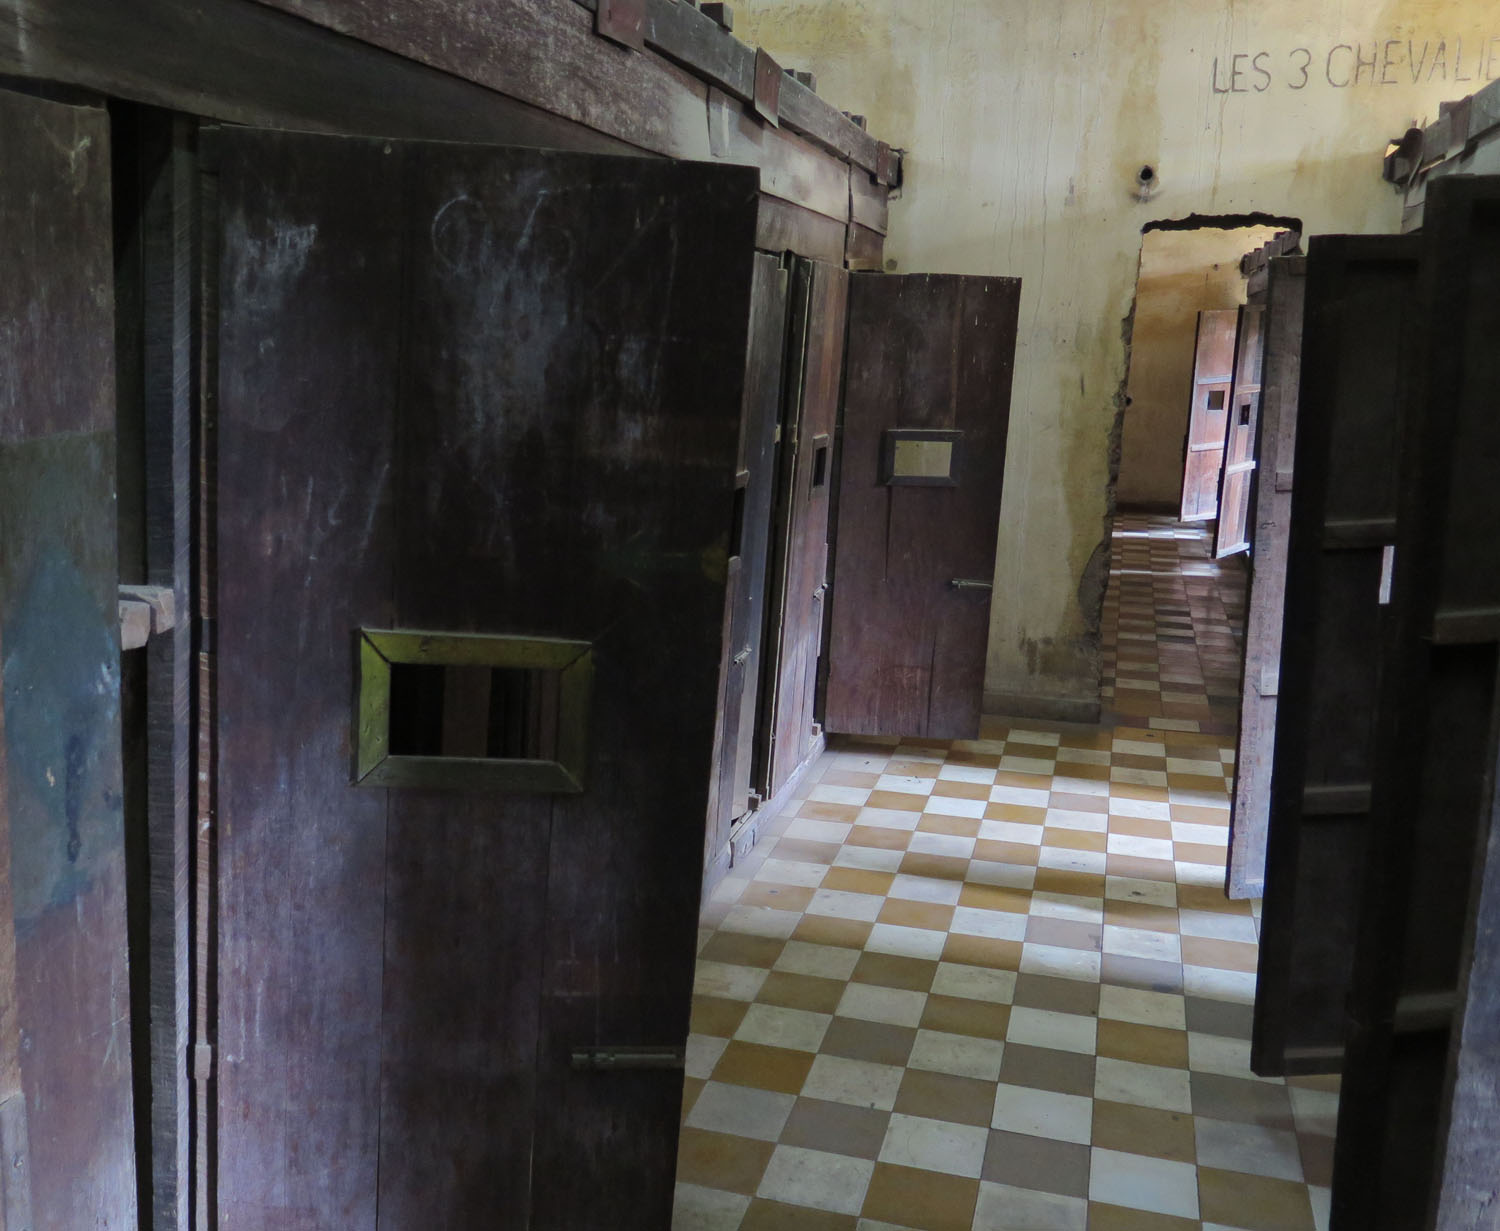 Cambodia-The-Killing-Fields-S-21-Cells